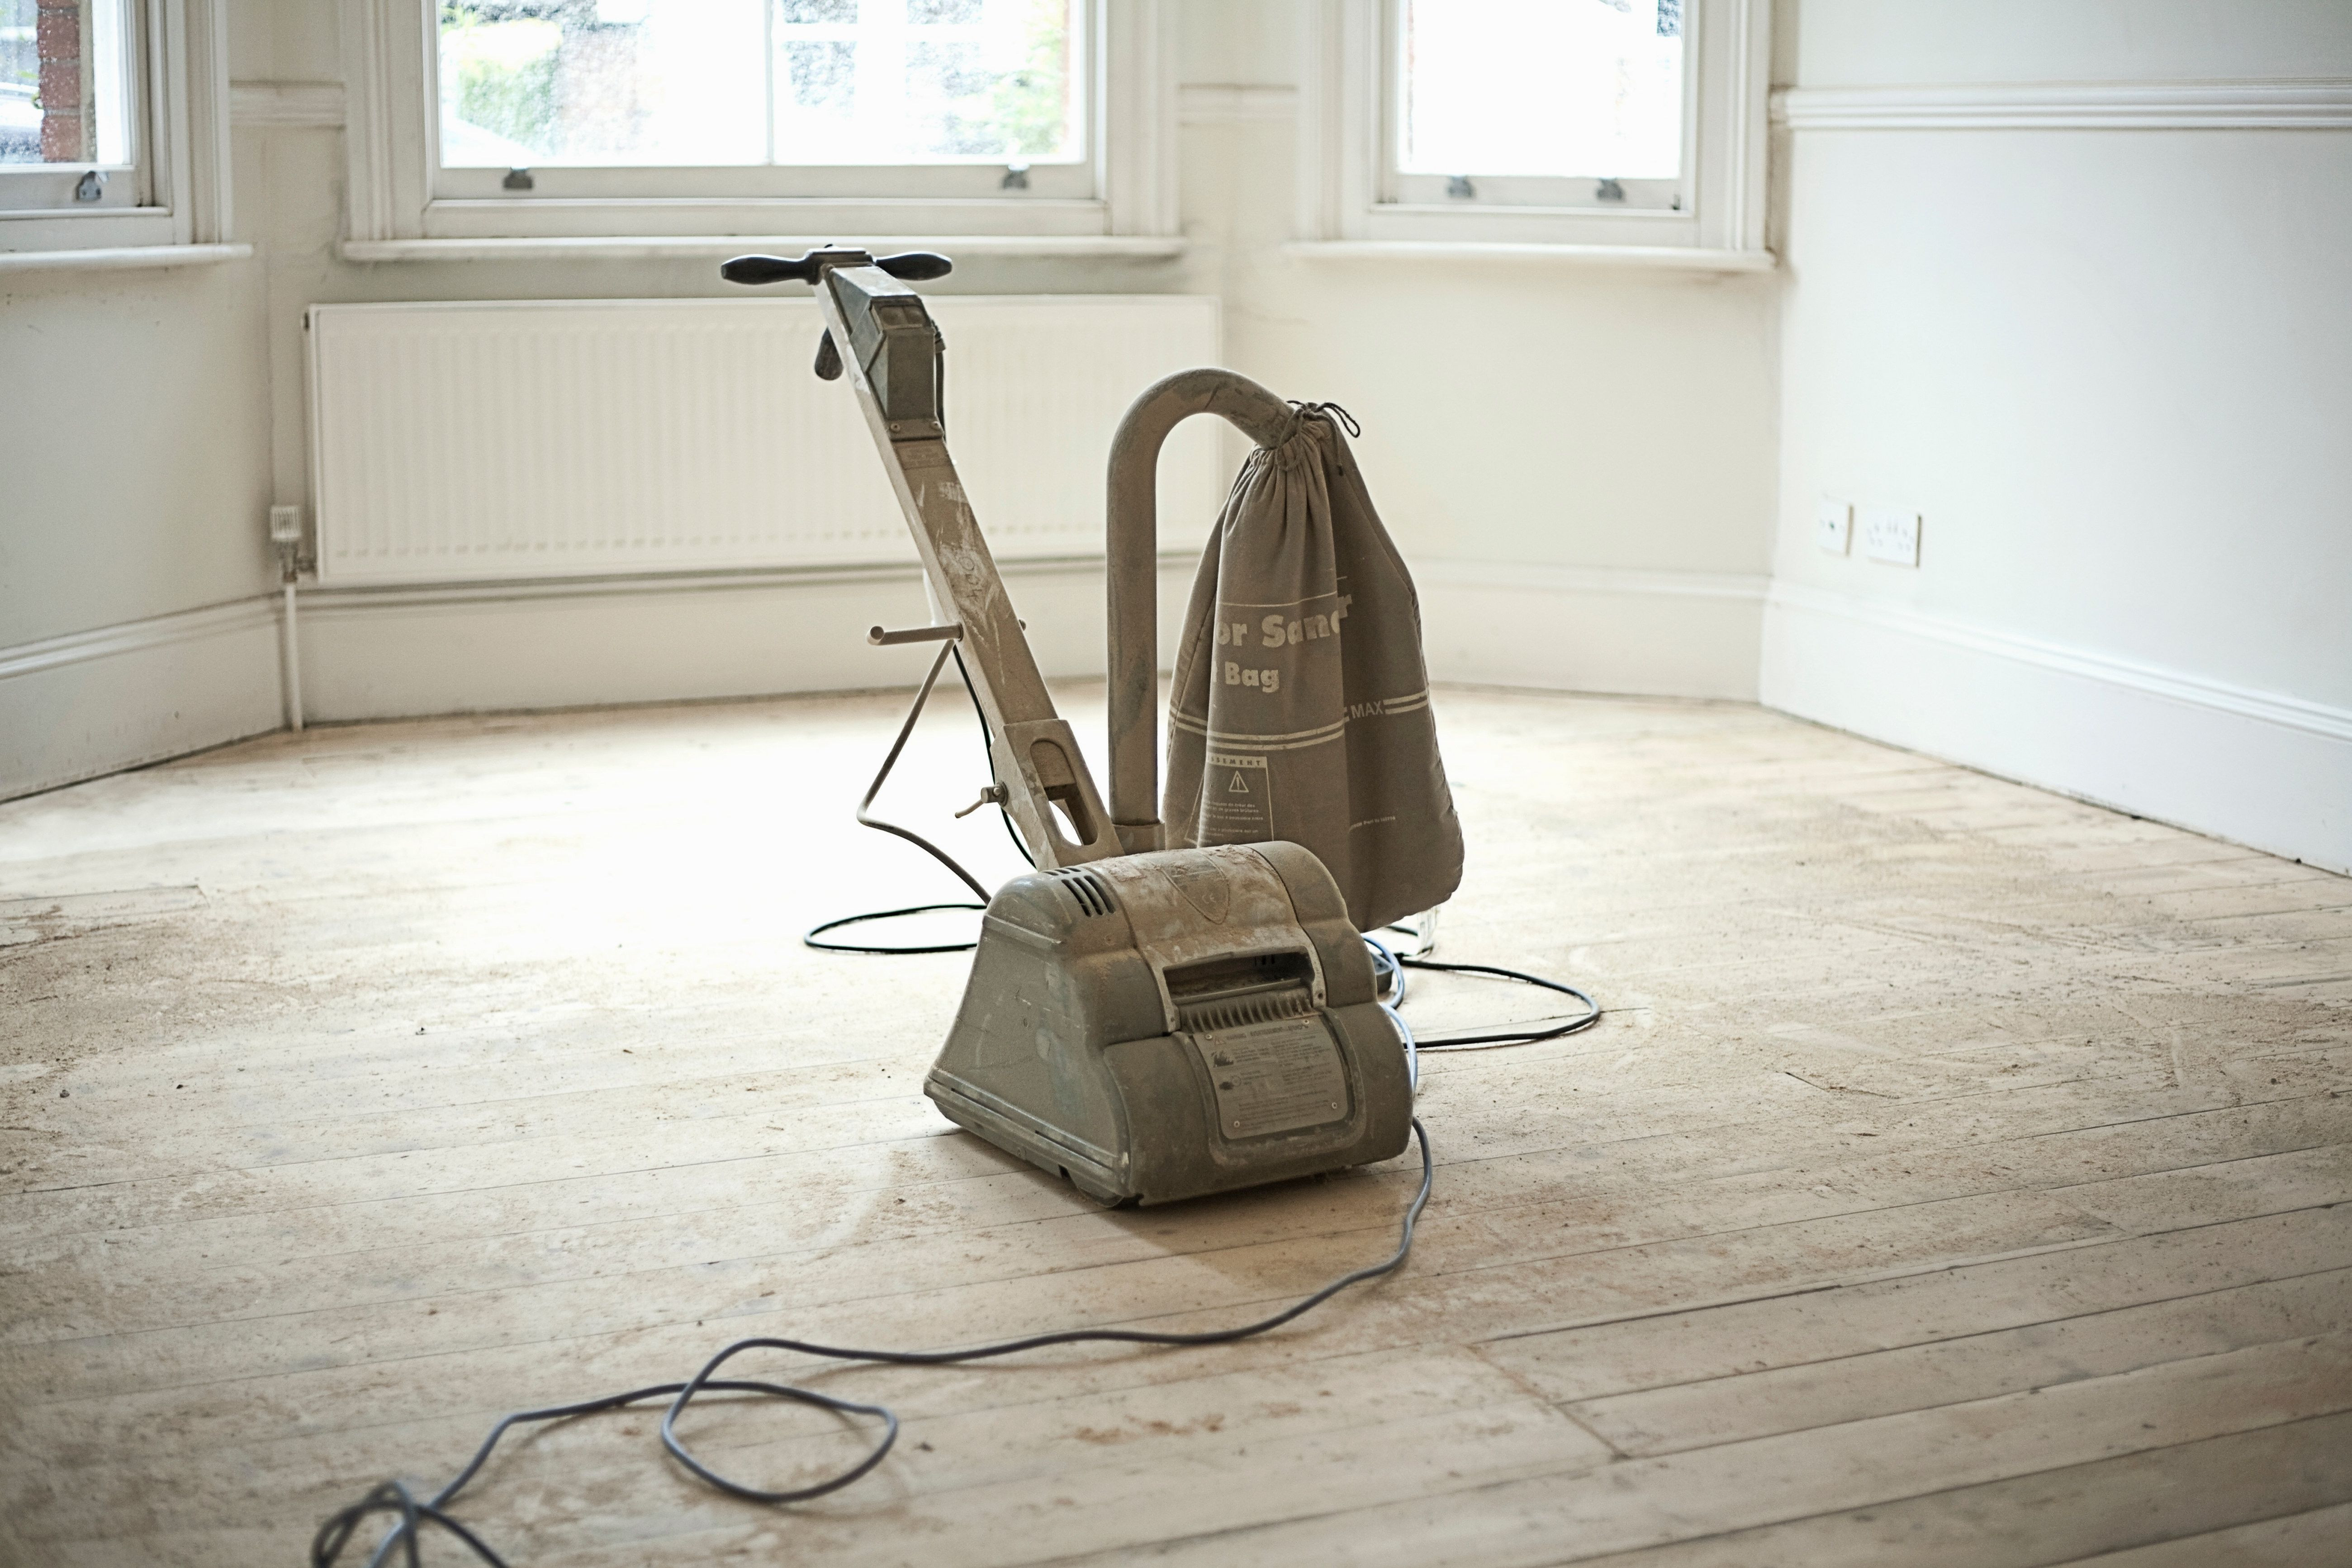 how to sand and refinish hardwood floors yourself of floor sanders to rent when finishing your wood floor inside sander on wooden floorboards of new home 179707189 588760815f9b58bdb3fed440